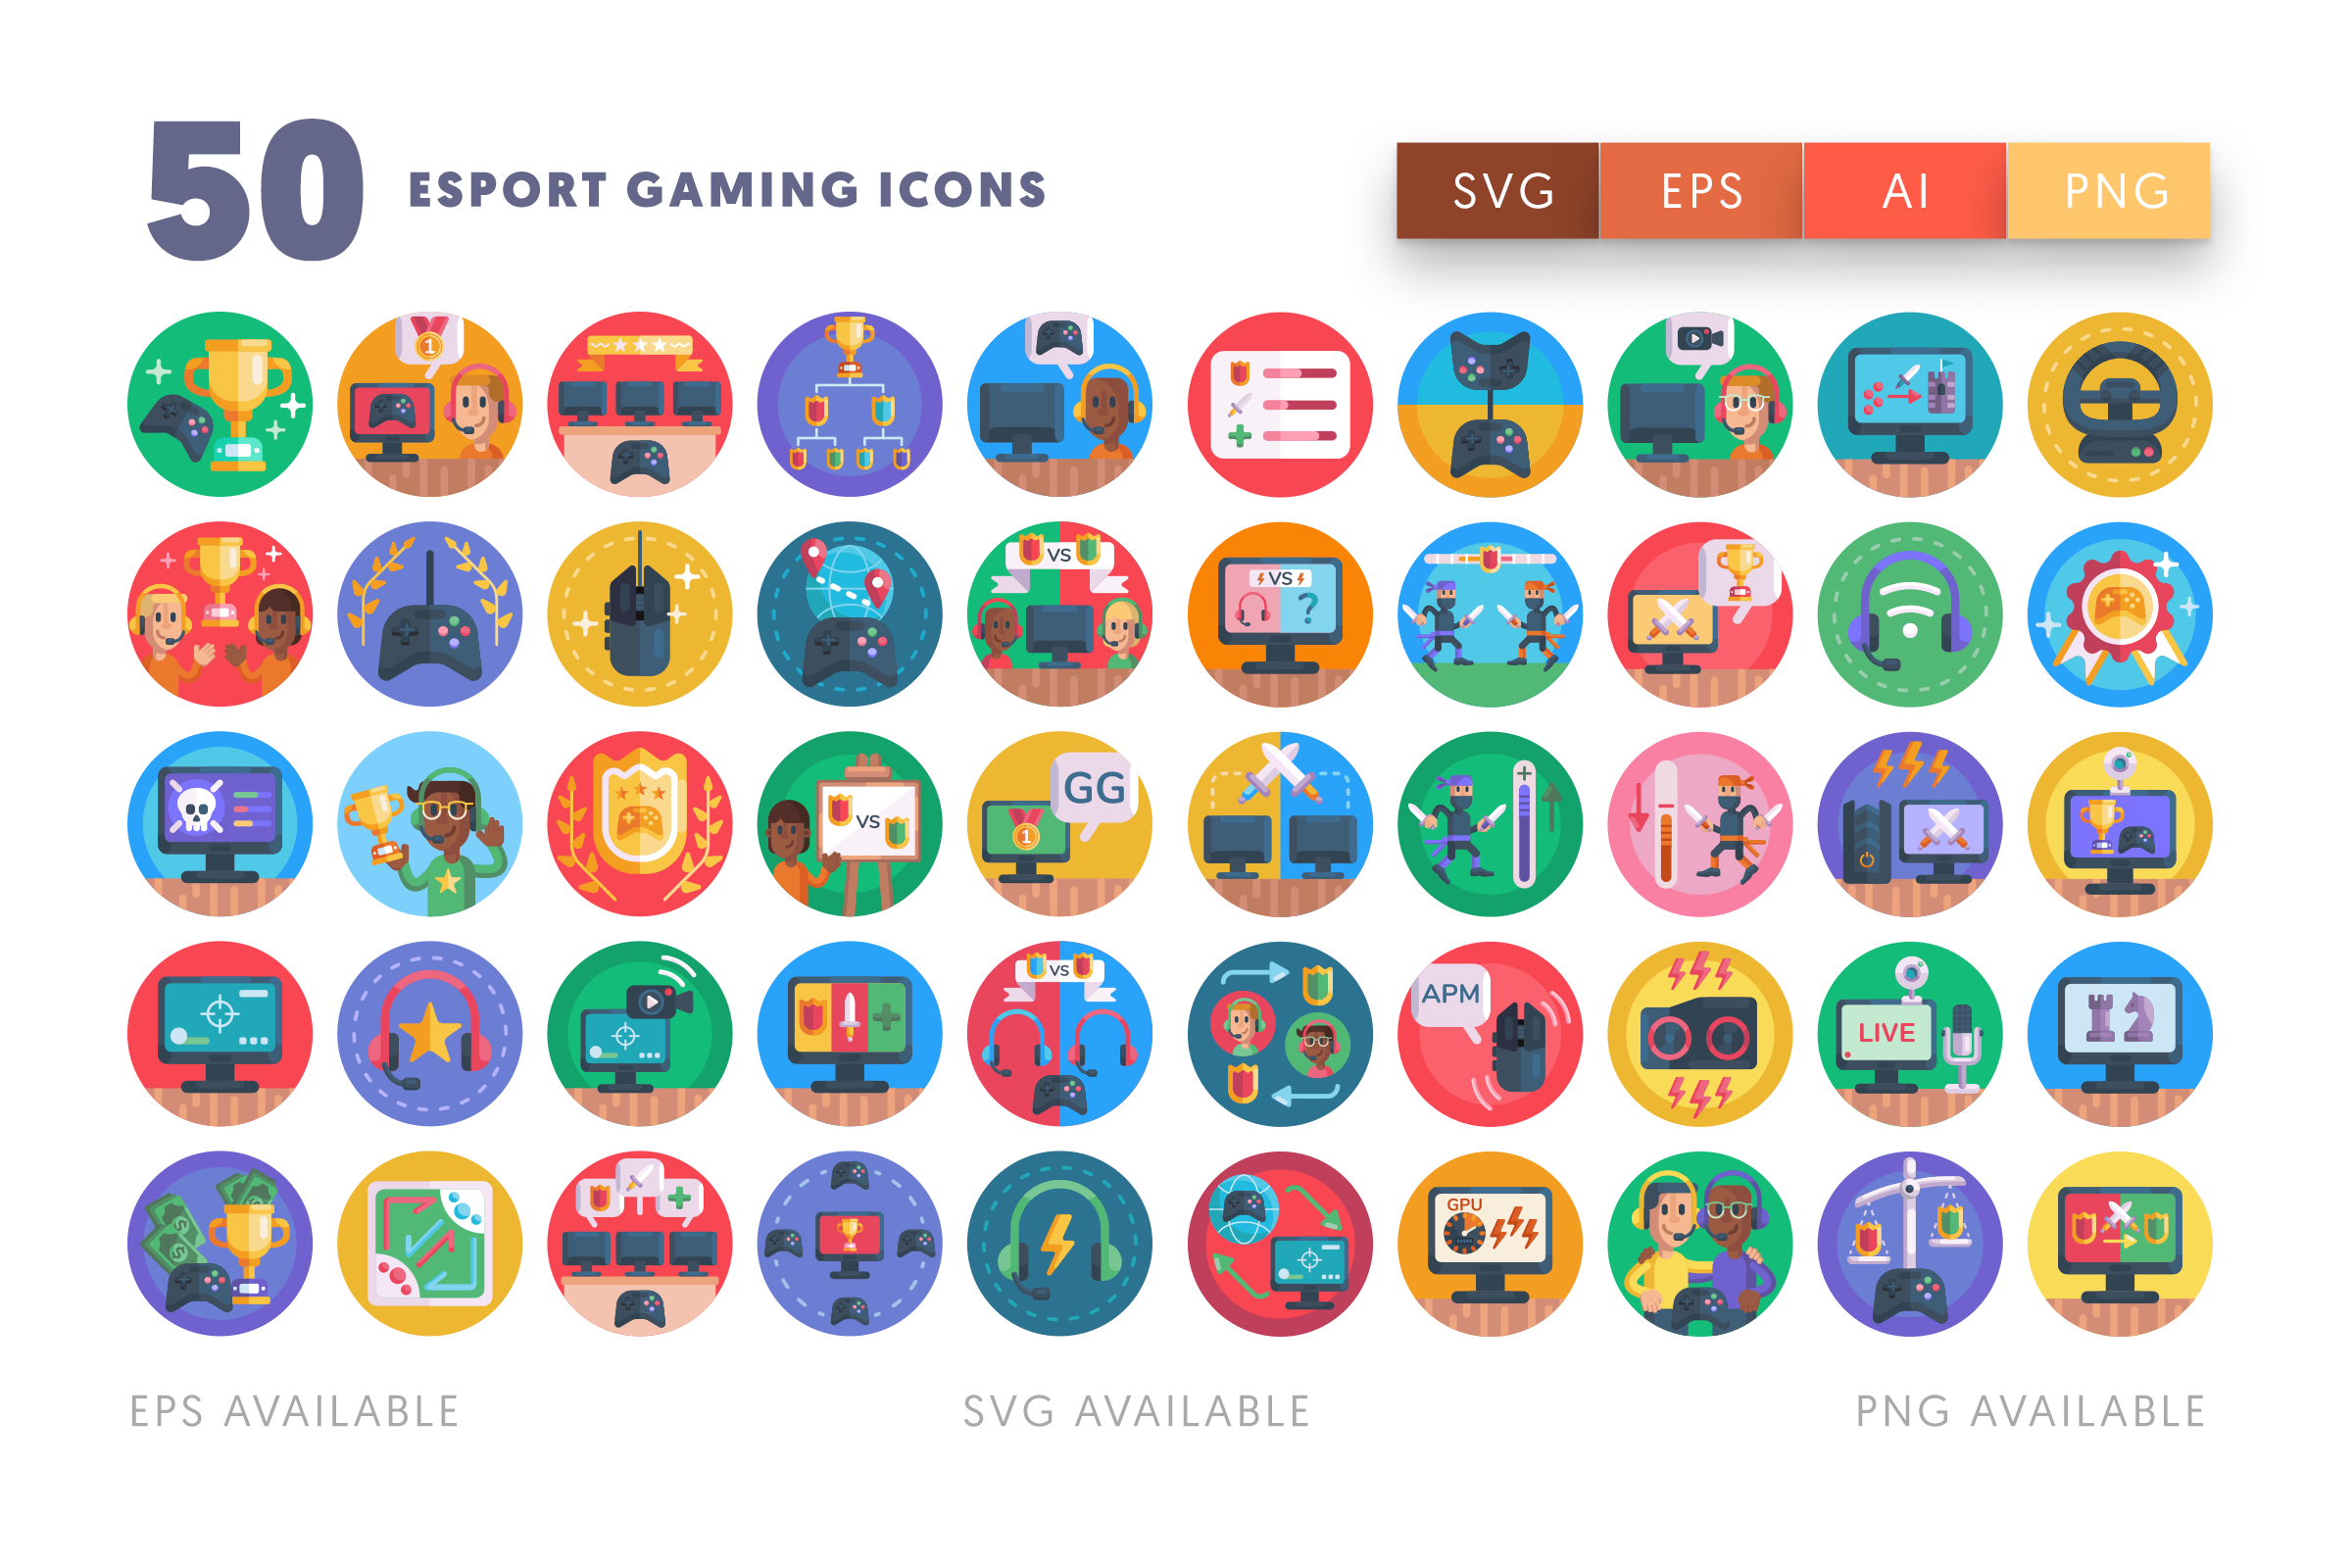 Esport Gaming icons png/svg/eps